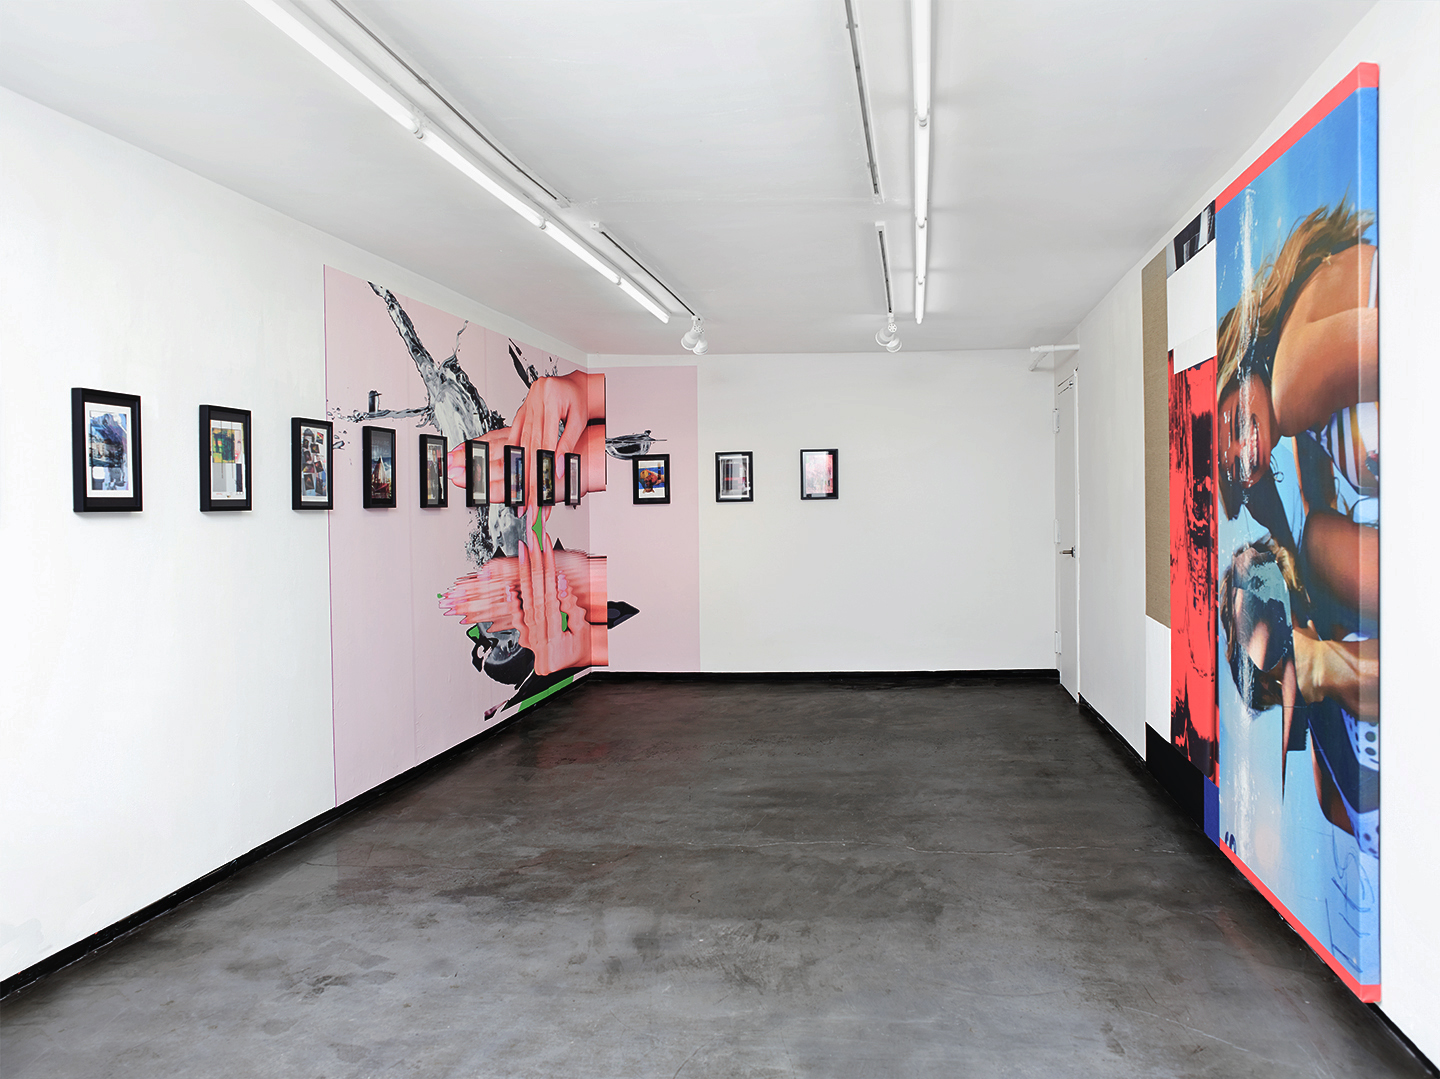 Chris Dorland's  Chinese Ferrari, body juice, easy abs diet, ryan gosling silicone core, deskjet 3520;first 500 get a free hoodie , March 5 - April 18, 2015;  More information ; Photo credit:  BFA.com